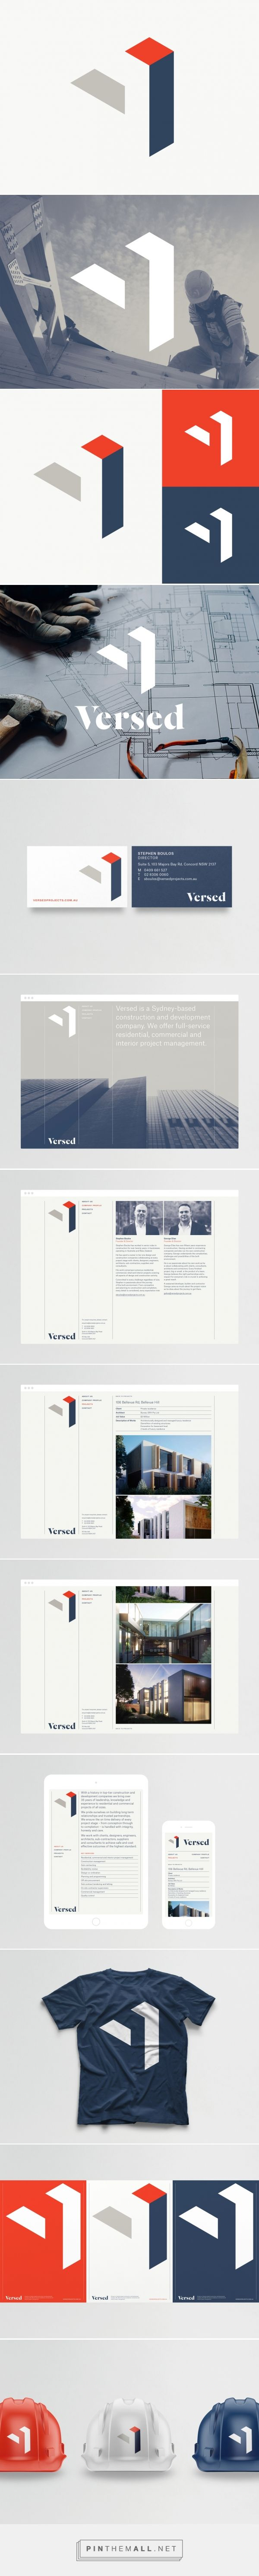 Christopher Doyle & Co. — Versed - created via https://pinthemall.net